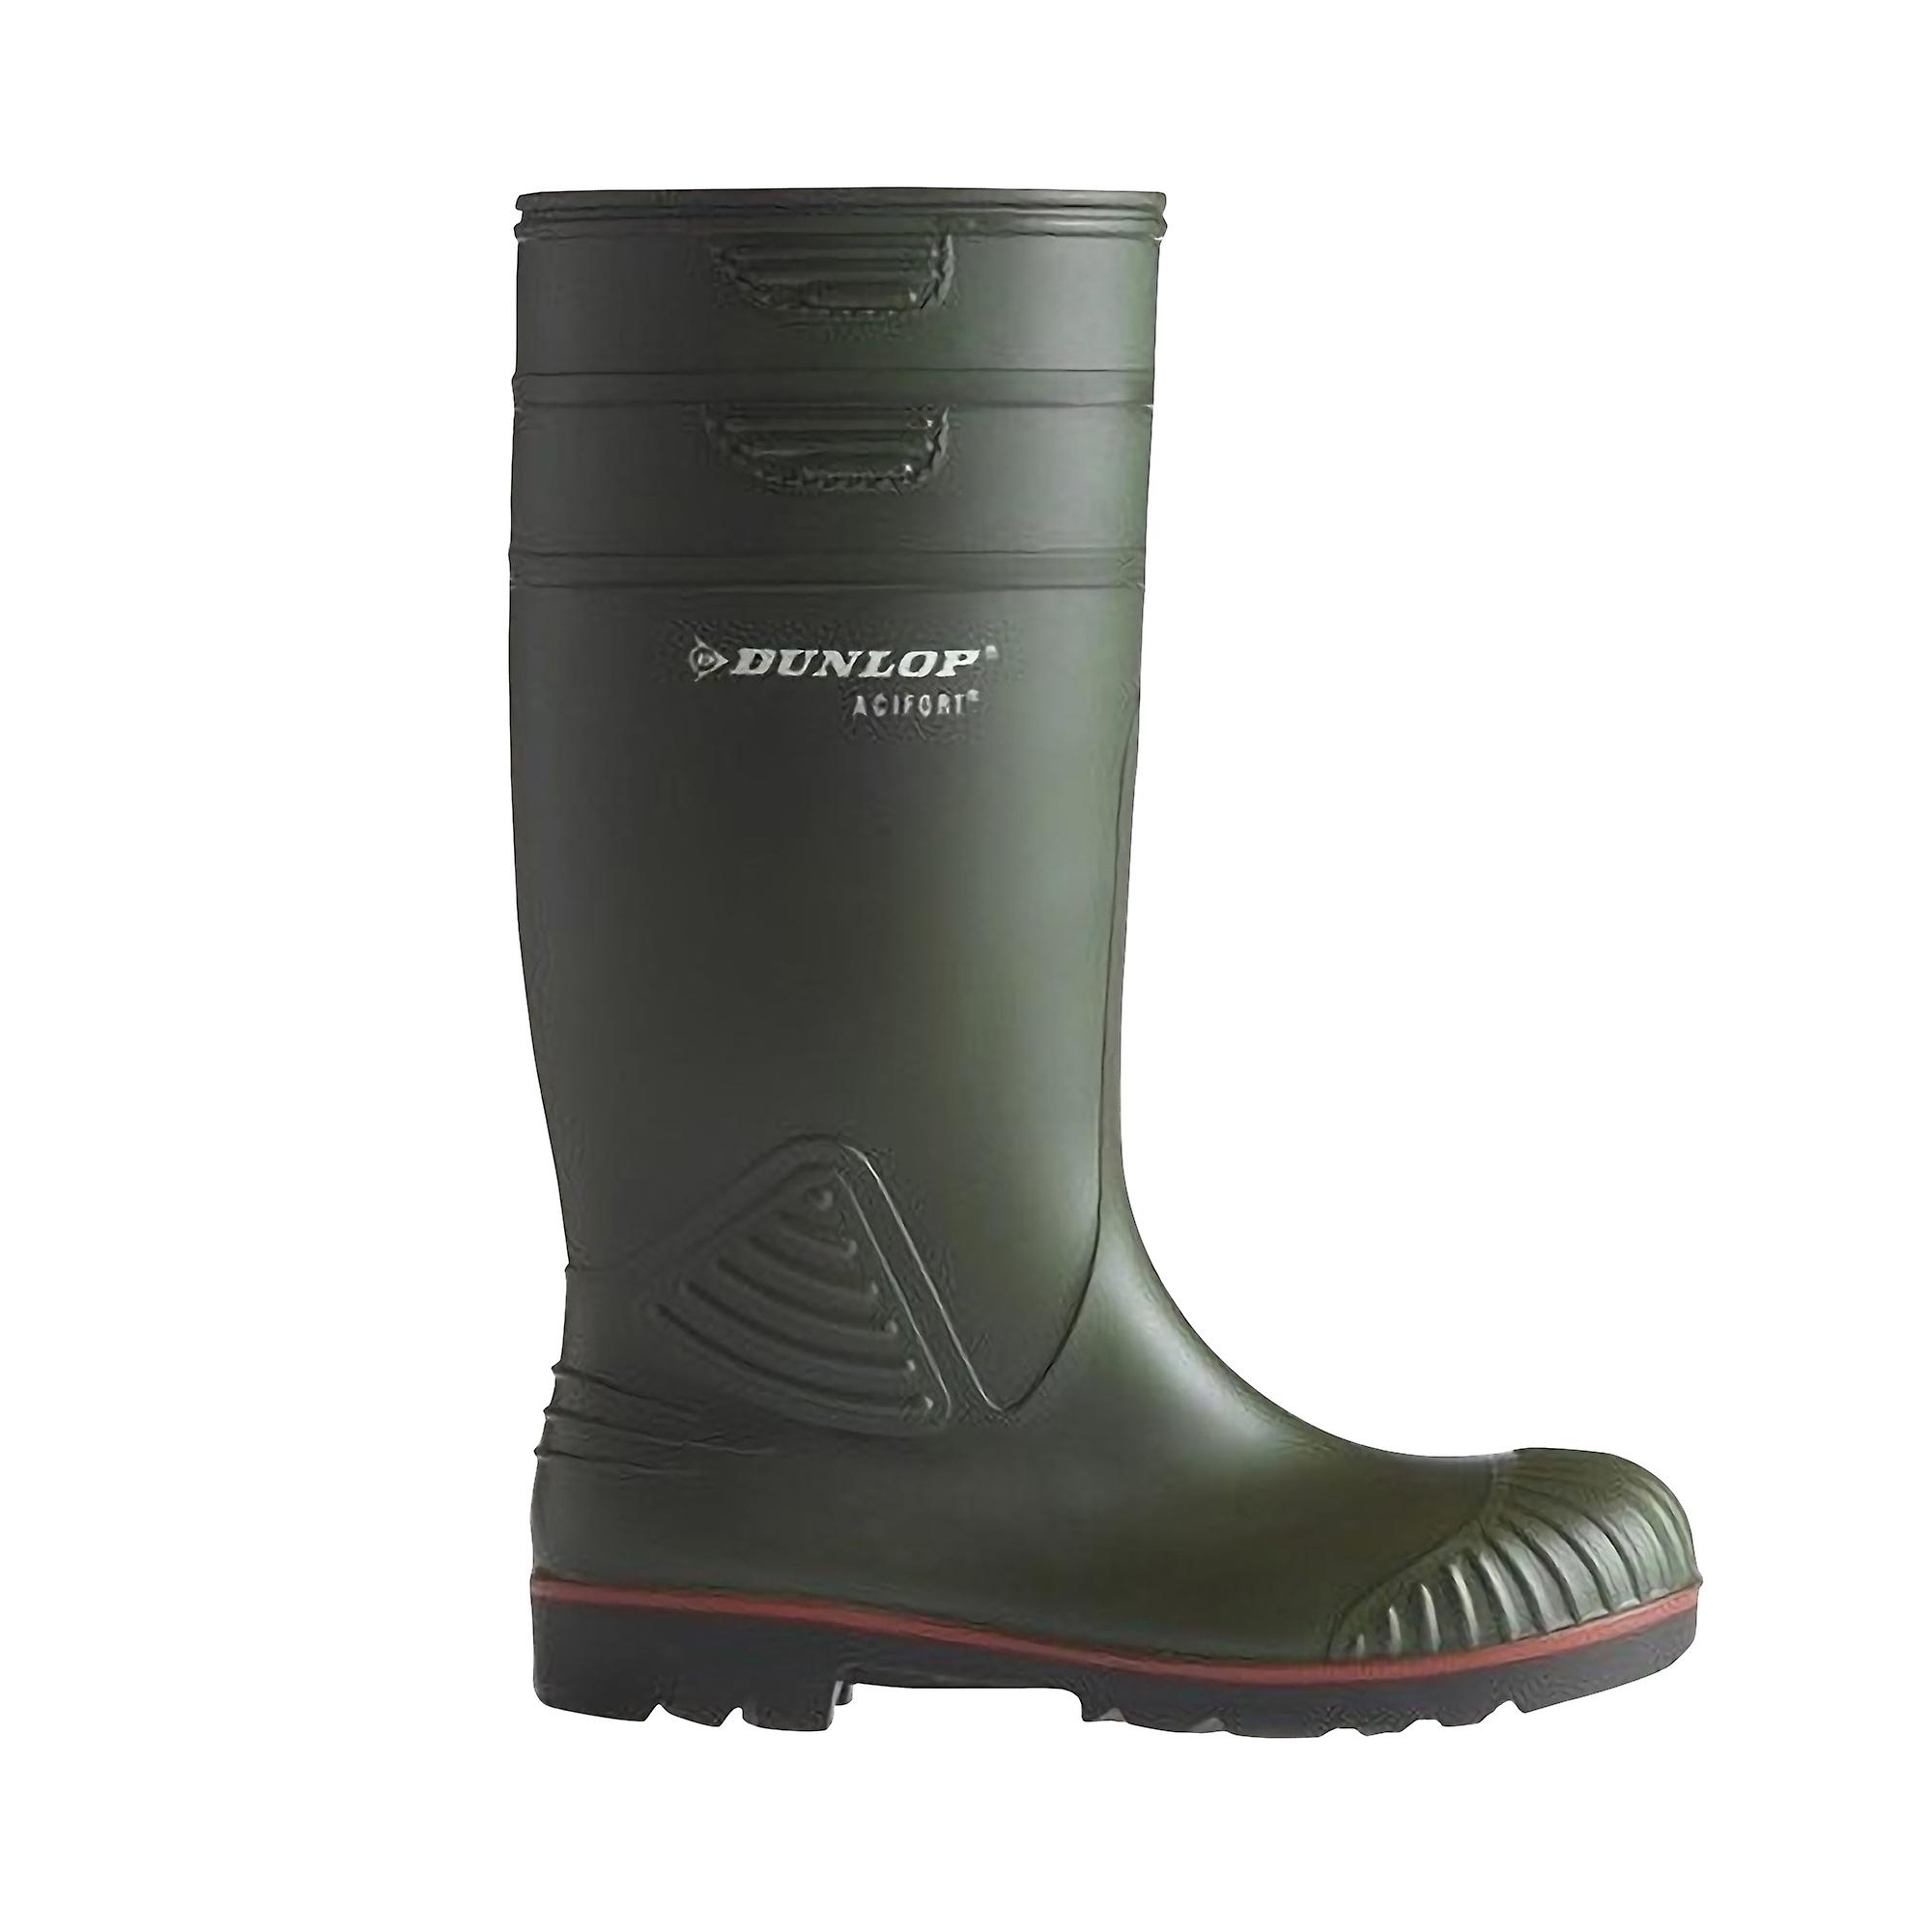 Dunlop A442631 Actifort Heavy Duty Safety Wellington / Mens Boots / Safety Wellingtons